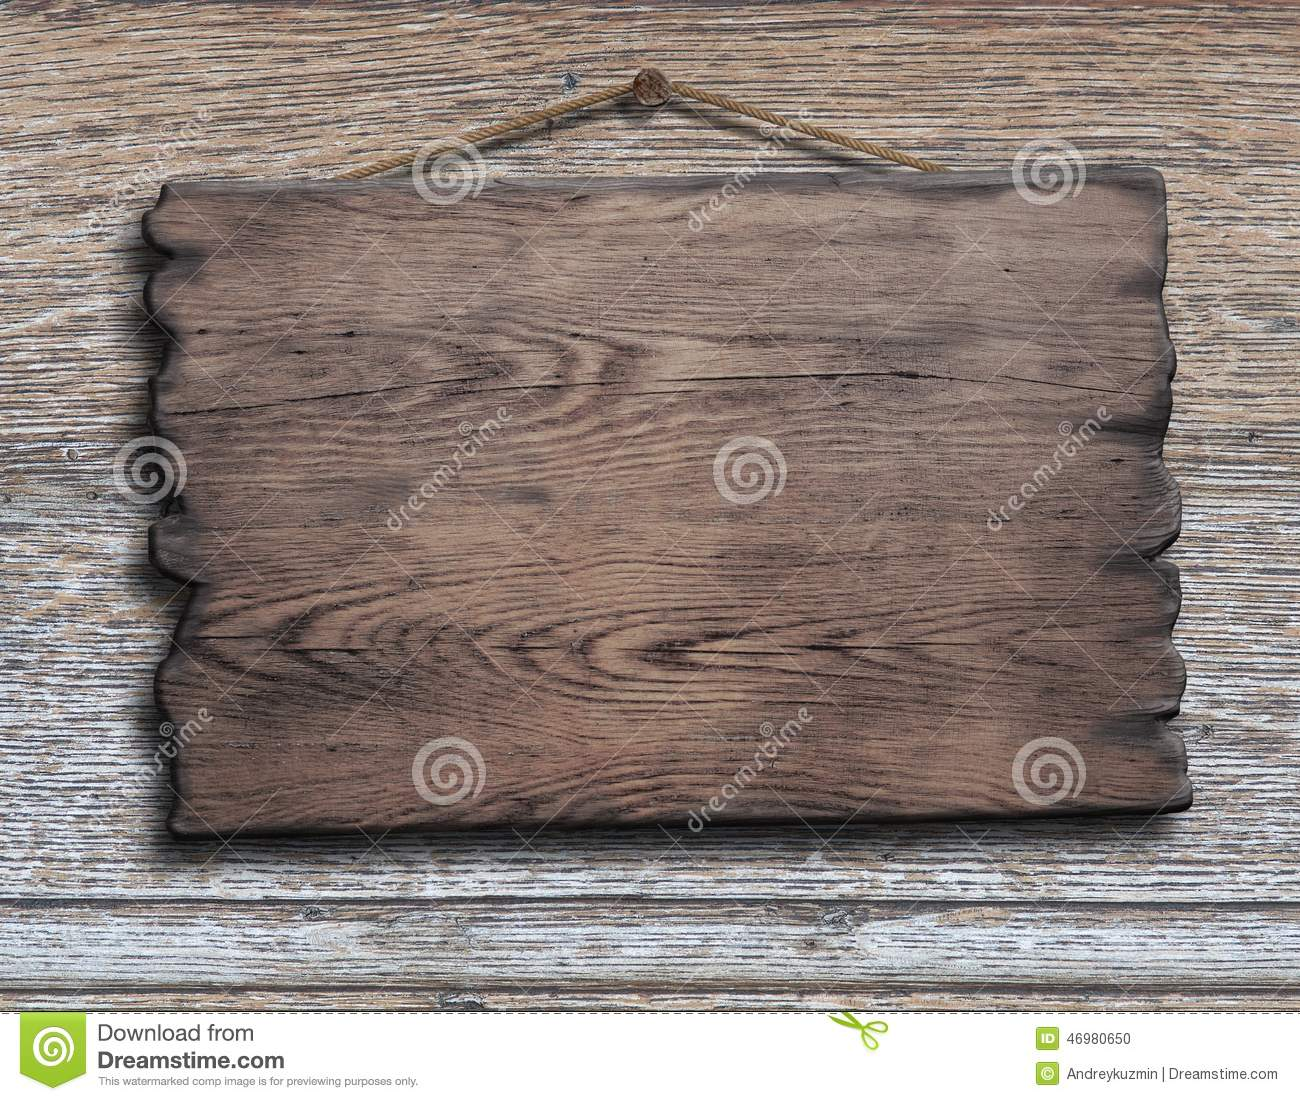 Old Wood Plank Or Plate Hanging On Timber Plank Stock